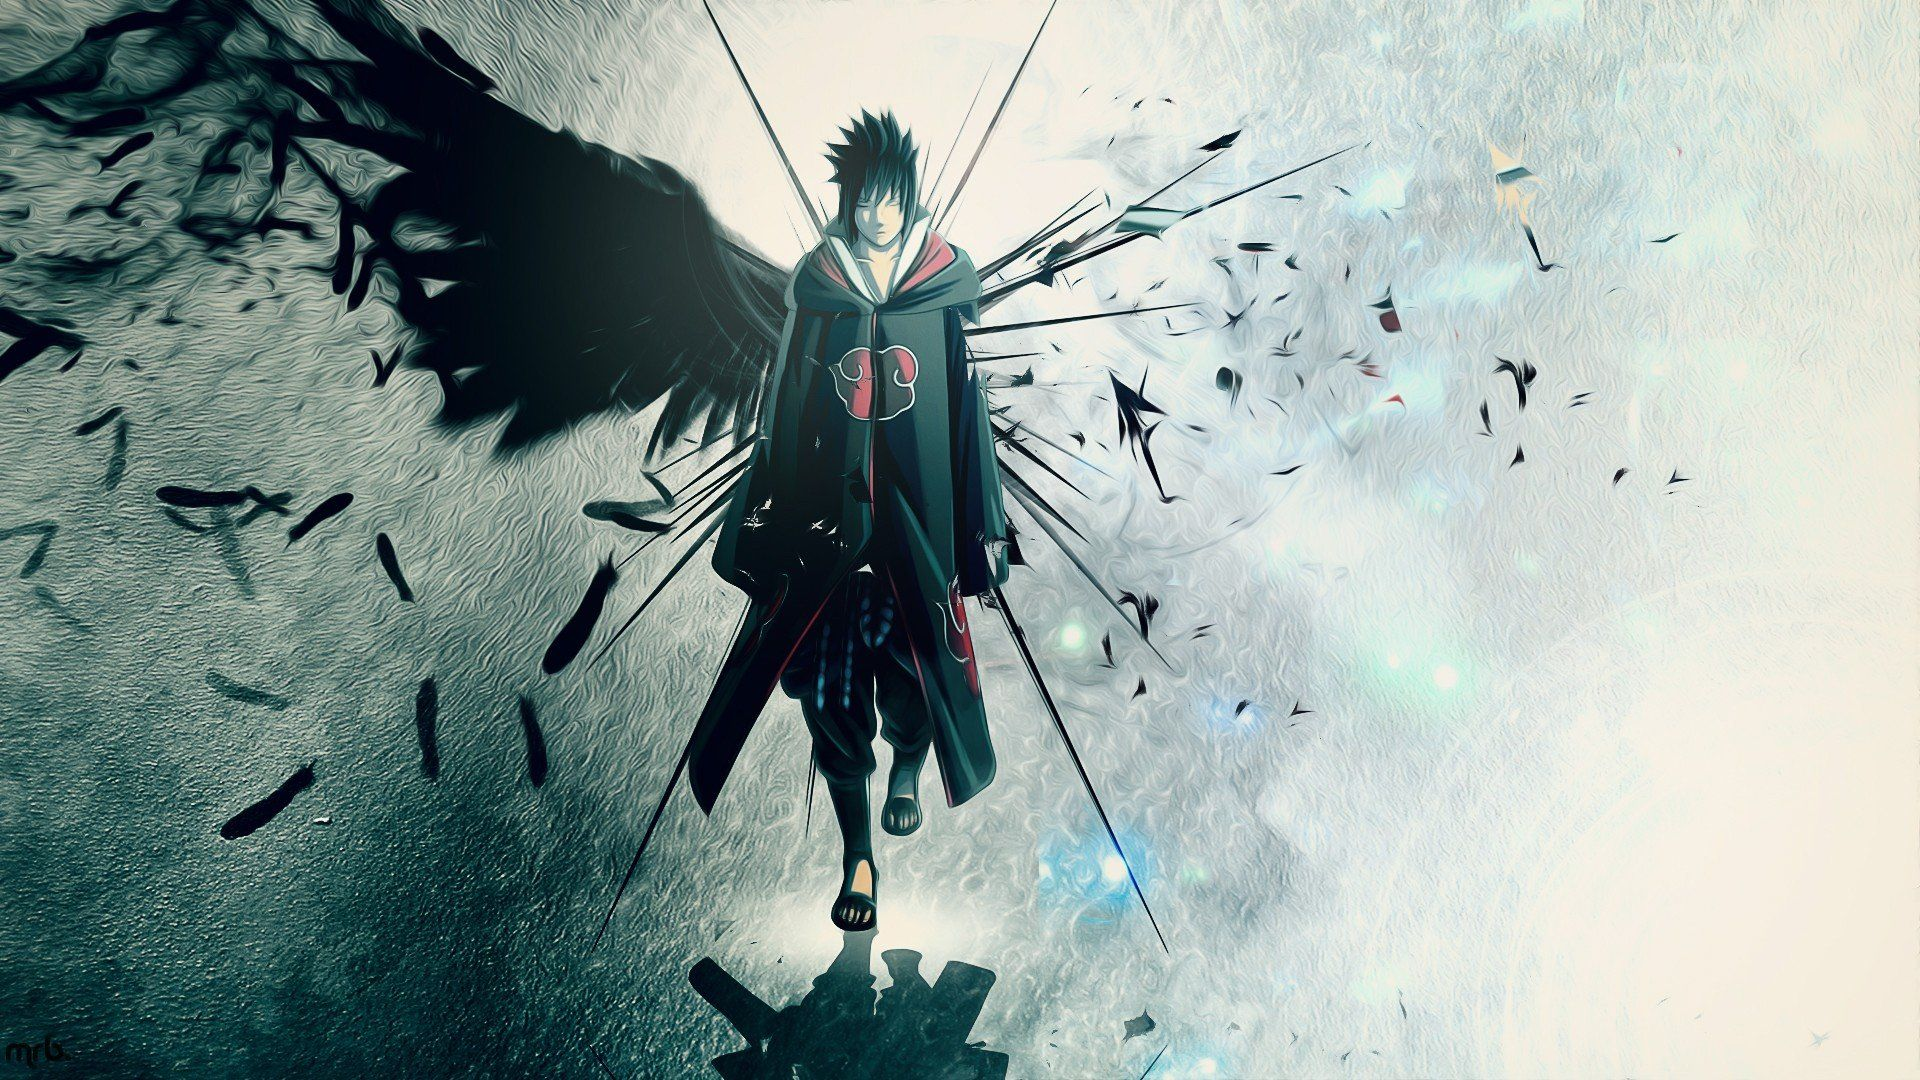 73 epic anime wallpapers on wallpapersafari - Epic wallpapers 2560x1440 ...